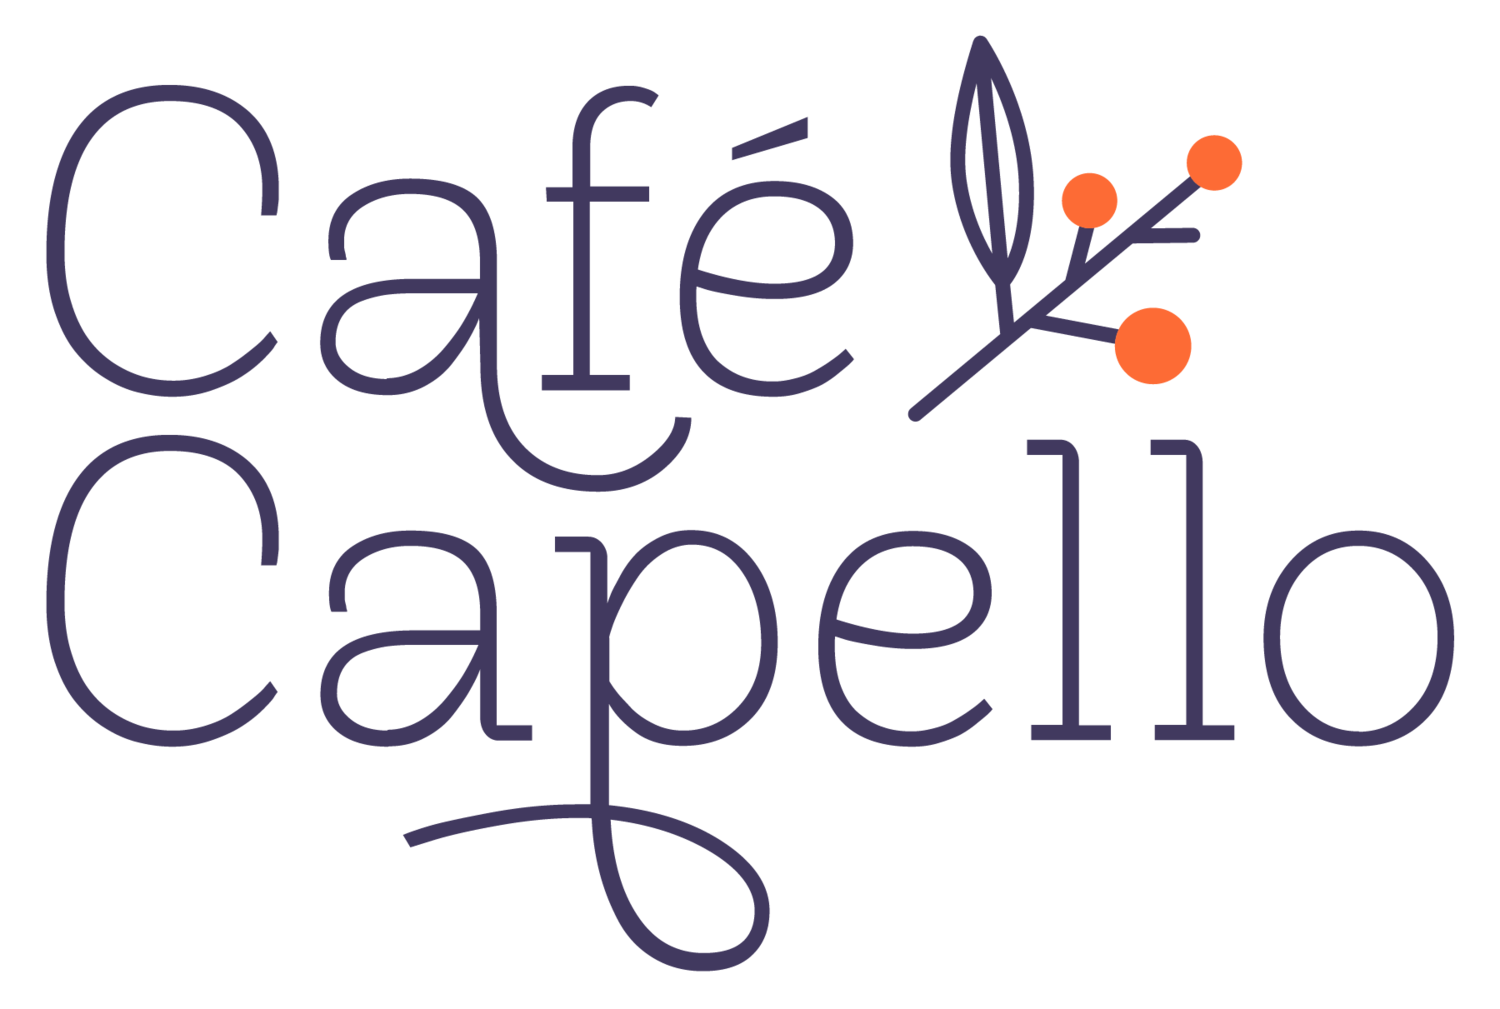 Cafe Capello - Reno Coffee Shop